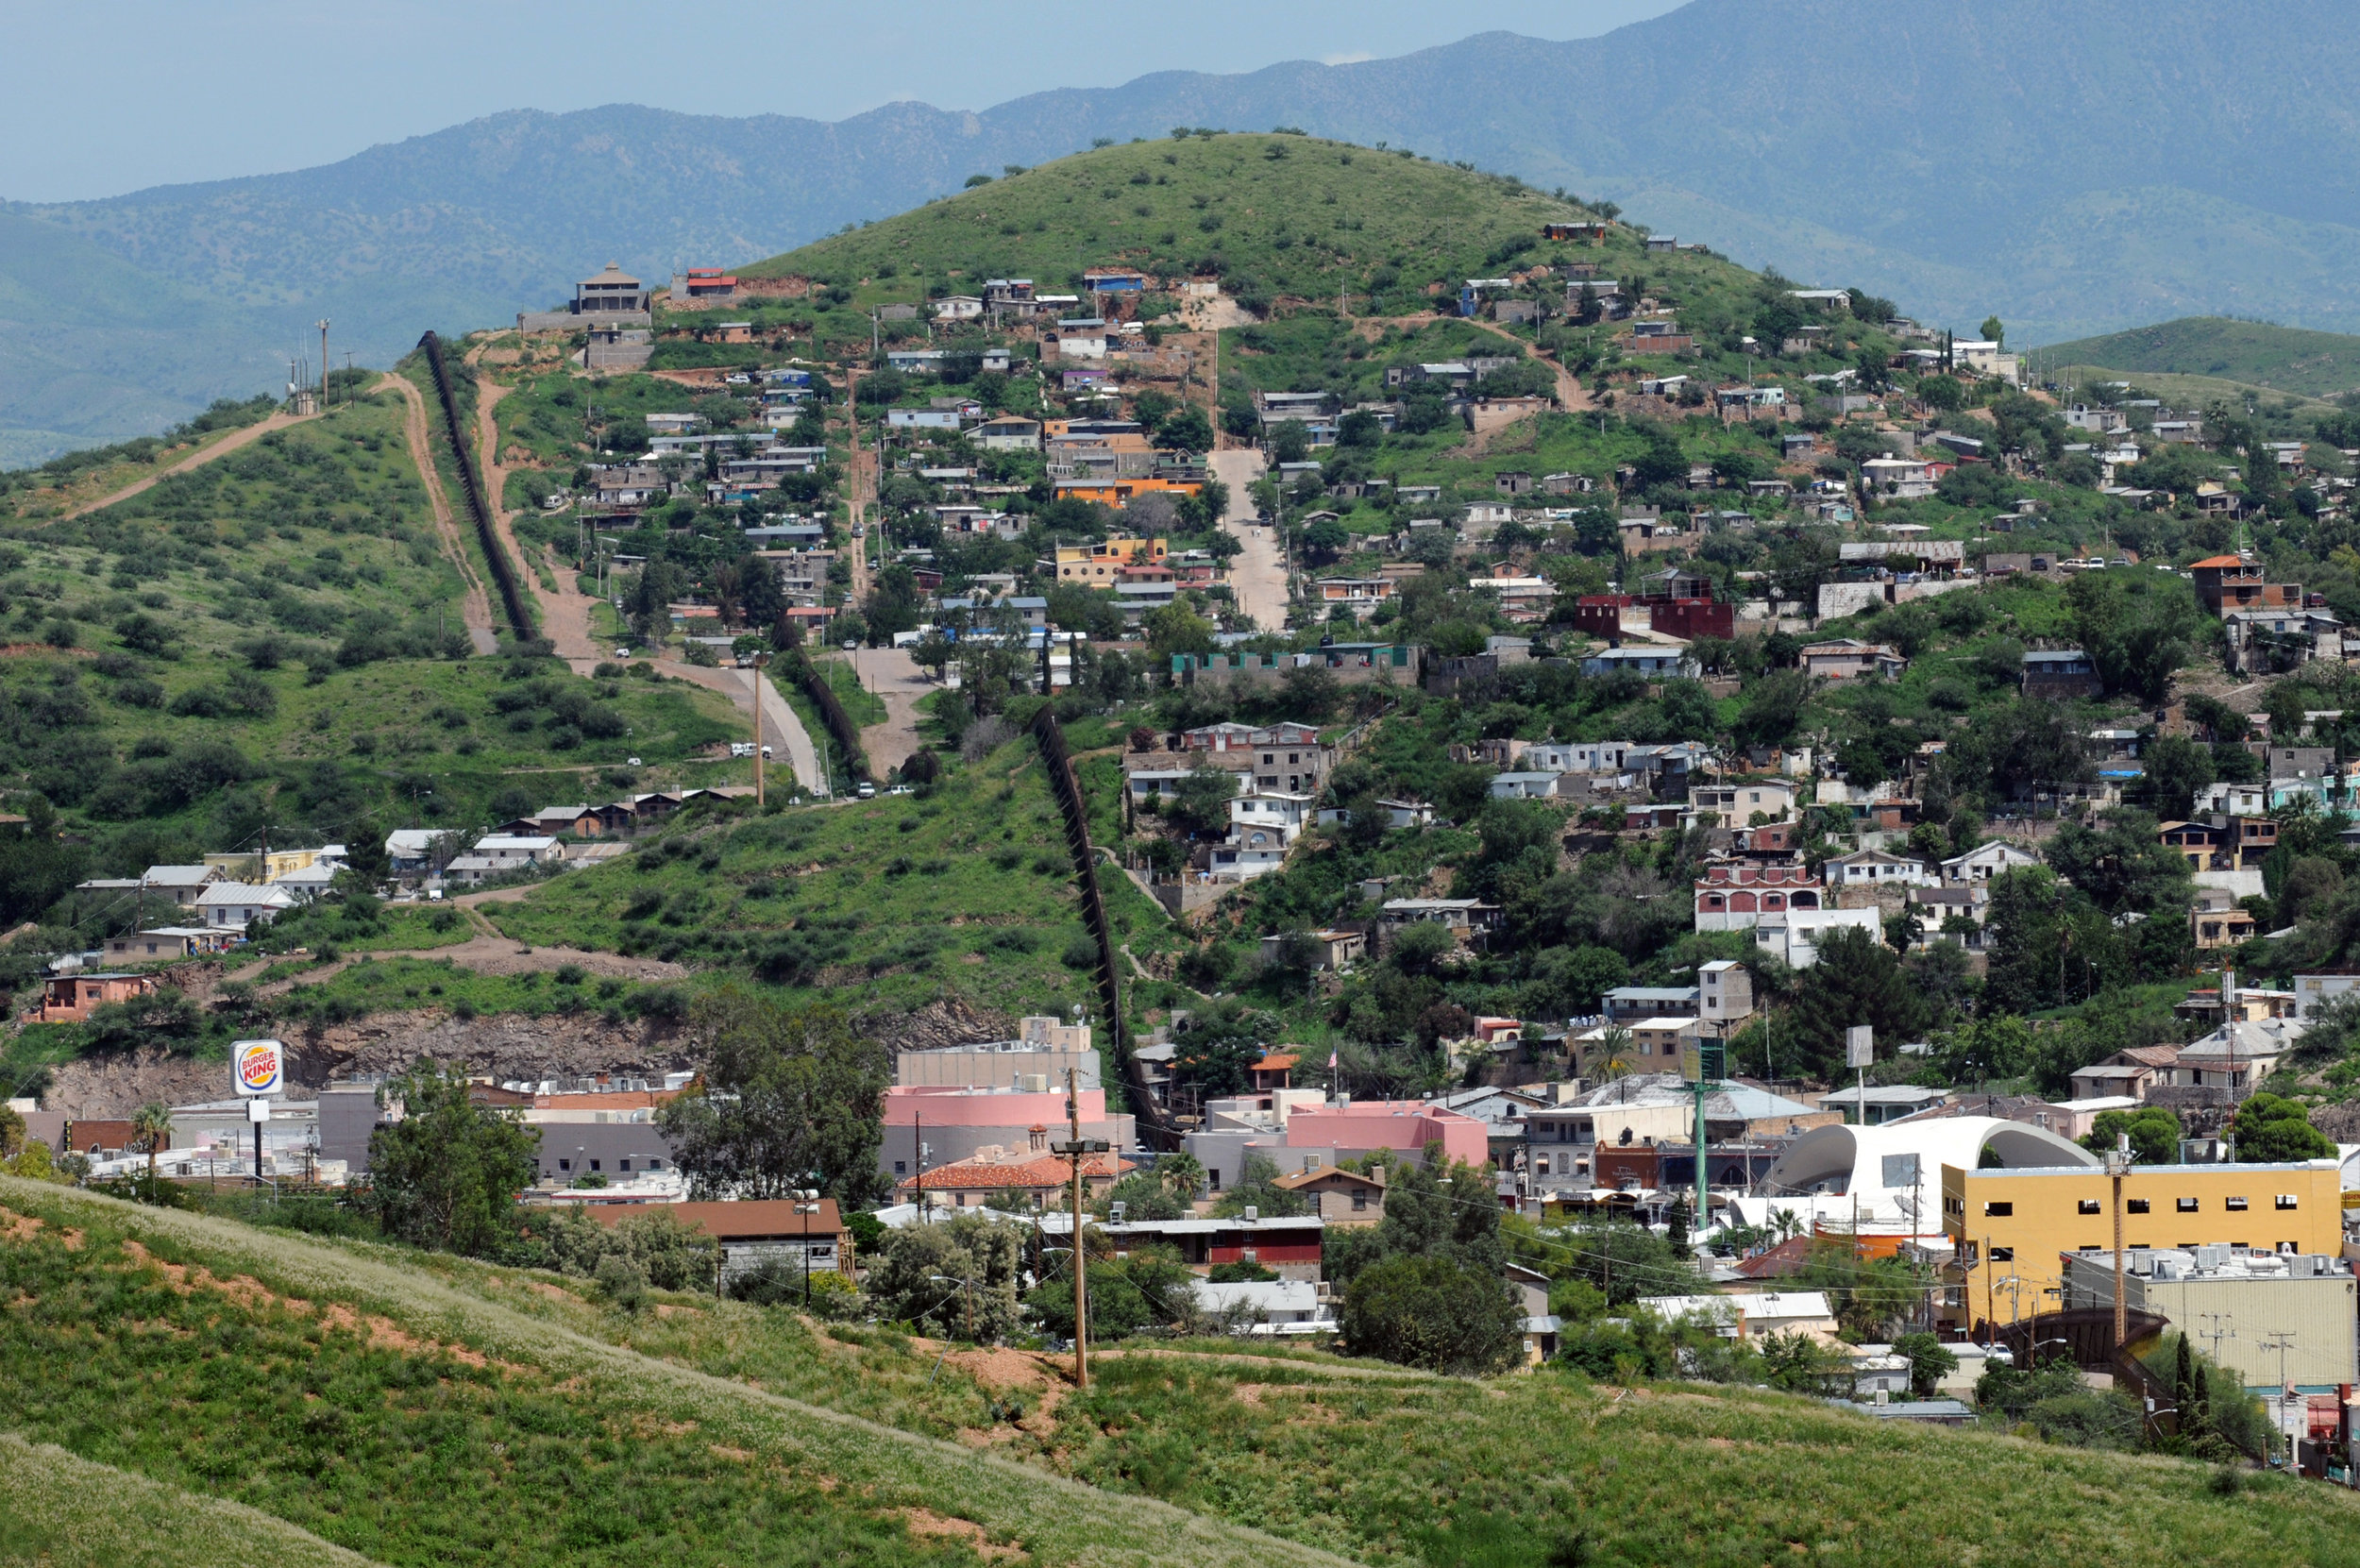 The city of Nogales, Arizona garners national attention after the president's declaration of a national emergency at the border. (Wikimedia Commons)